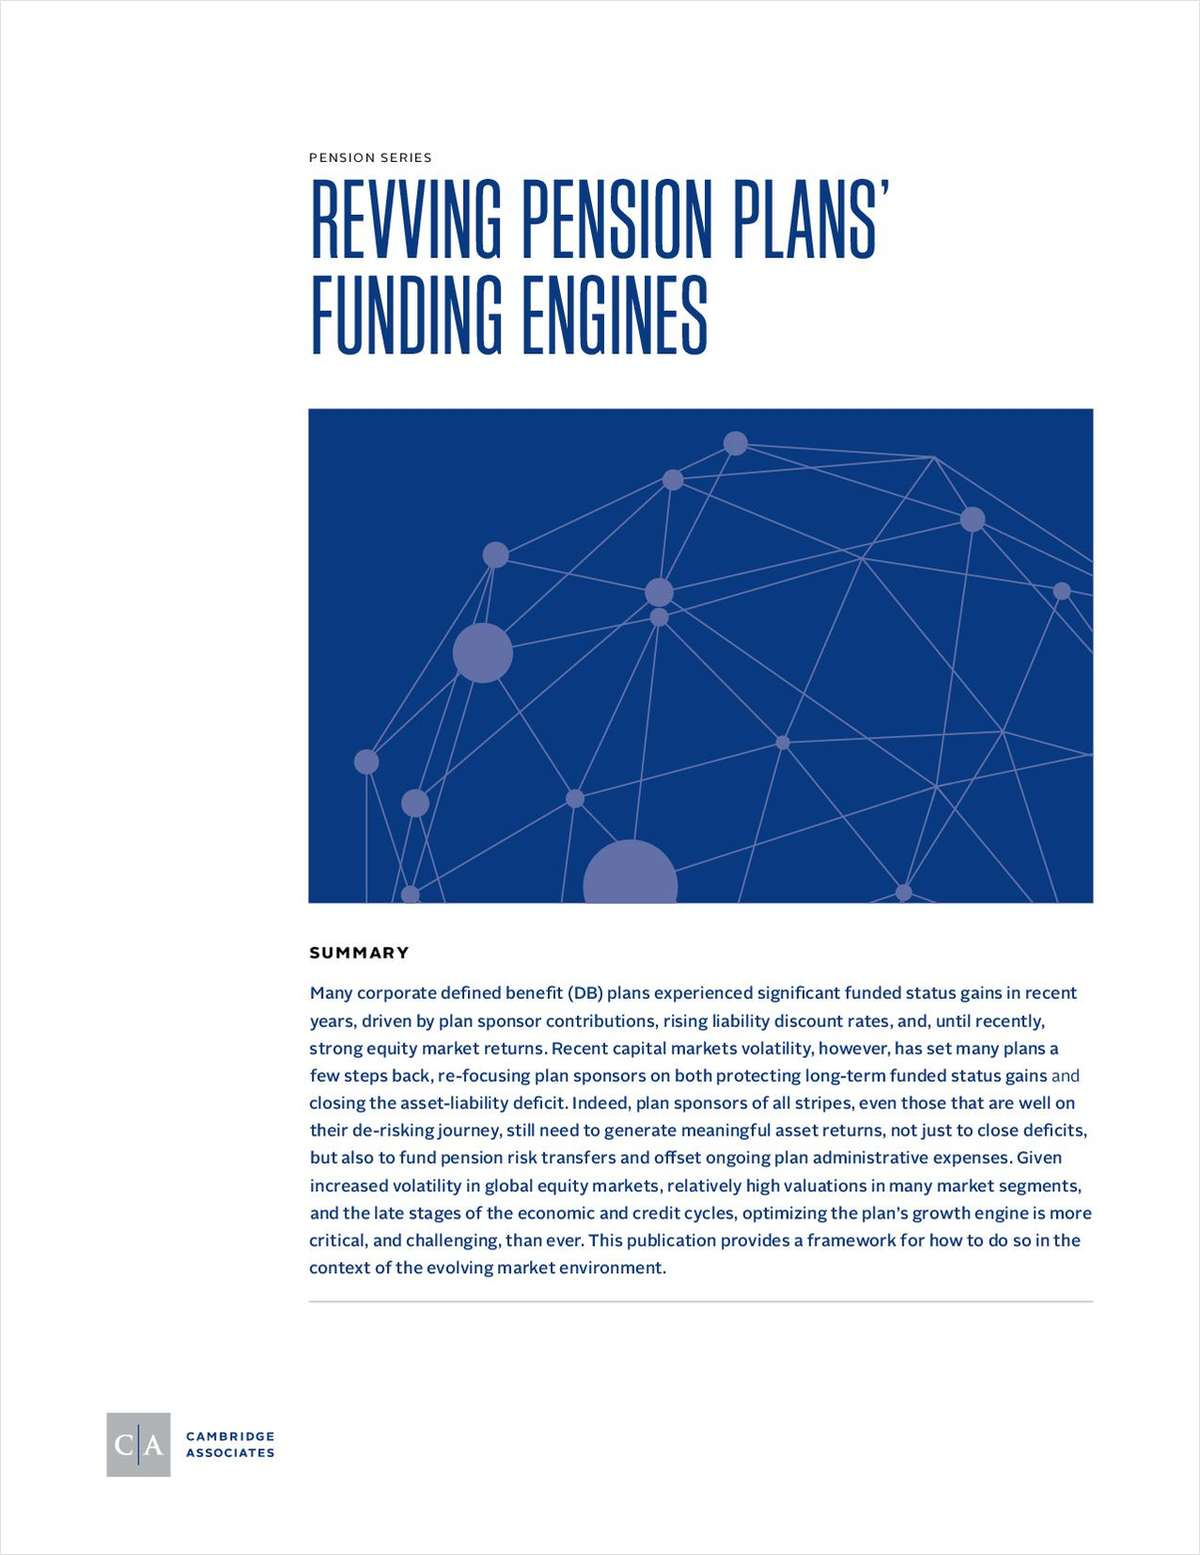 Reviving Pension Plans' Funding Engines